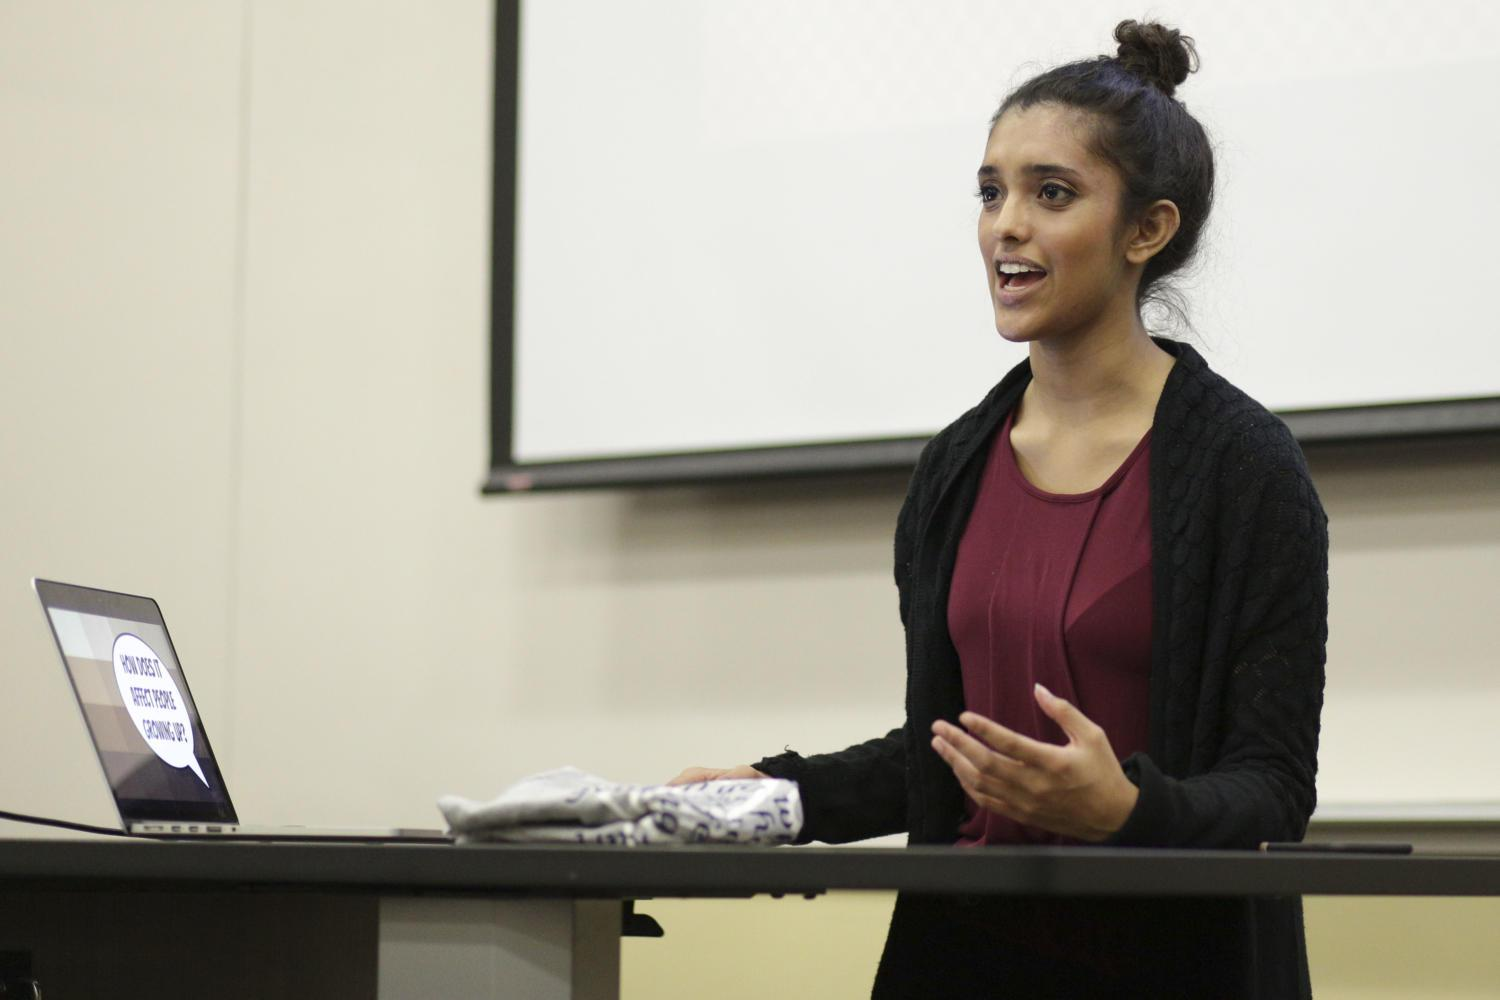 Junior finance major Jocelyn George led a discussion about colorism held by Pitt South Asian Student Association Friday night. (Photo by Thomas Yang | Senior Staff Photographer)